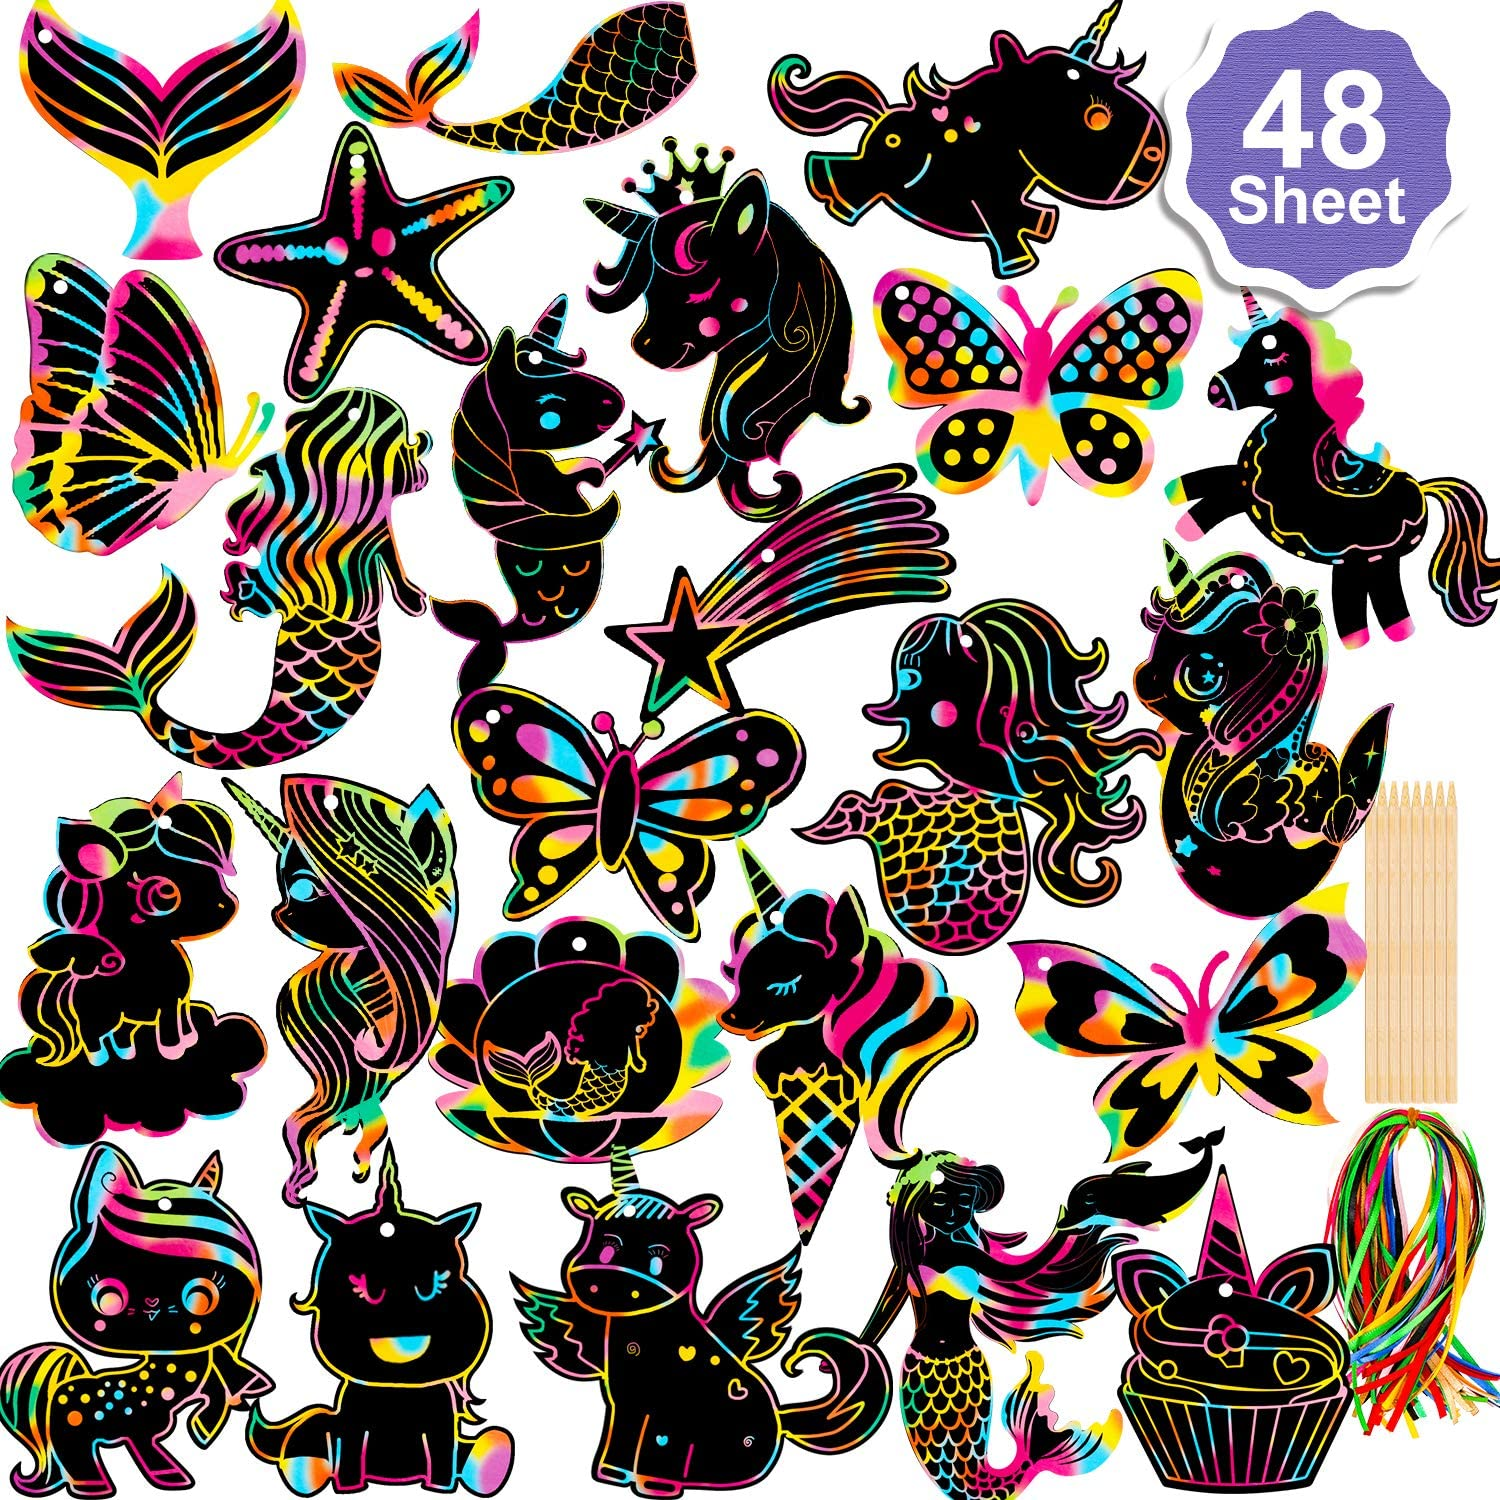 Konsait 48Pack Scratch Paper Art Set,Rainbow Magic Scratch Off Arts Crafts Supplies Mermaid Unicorn Butterfly Kits for Kids Teens Classroom Gifts Birthday Game Halloween Christmas Easter Valentine Favors